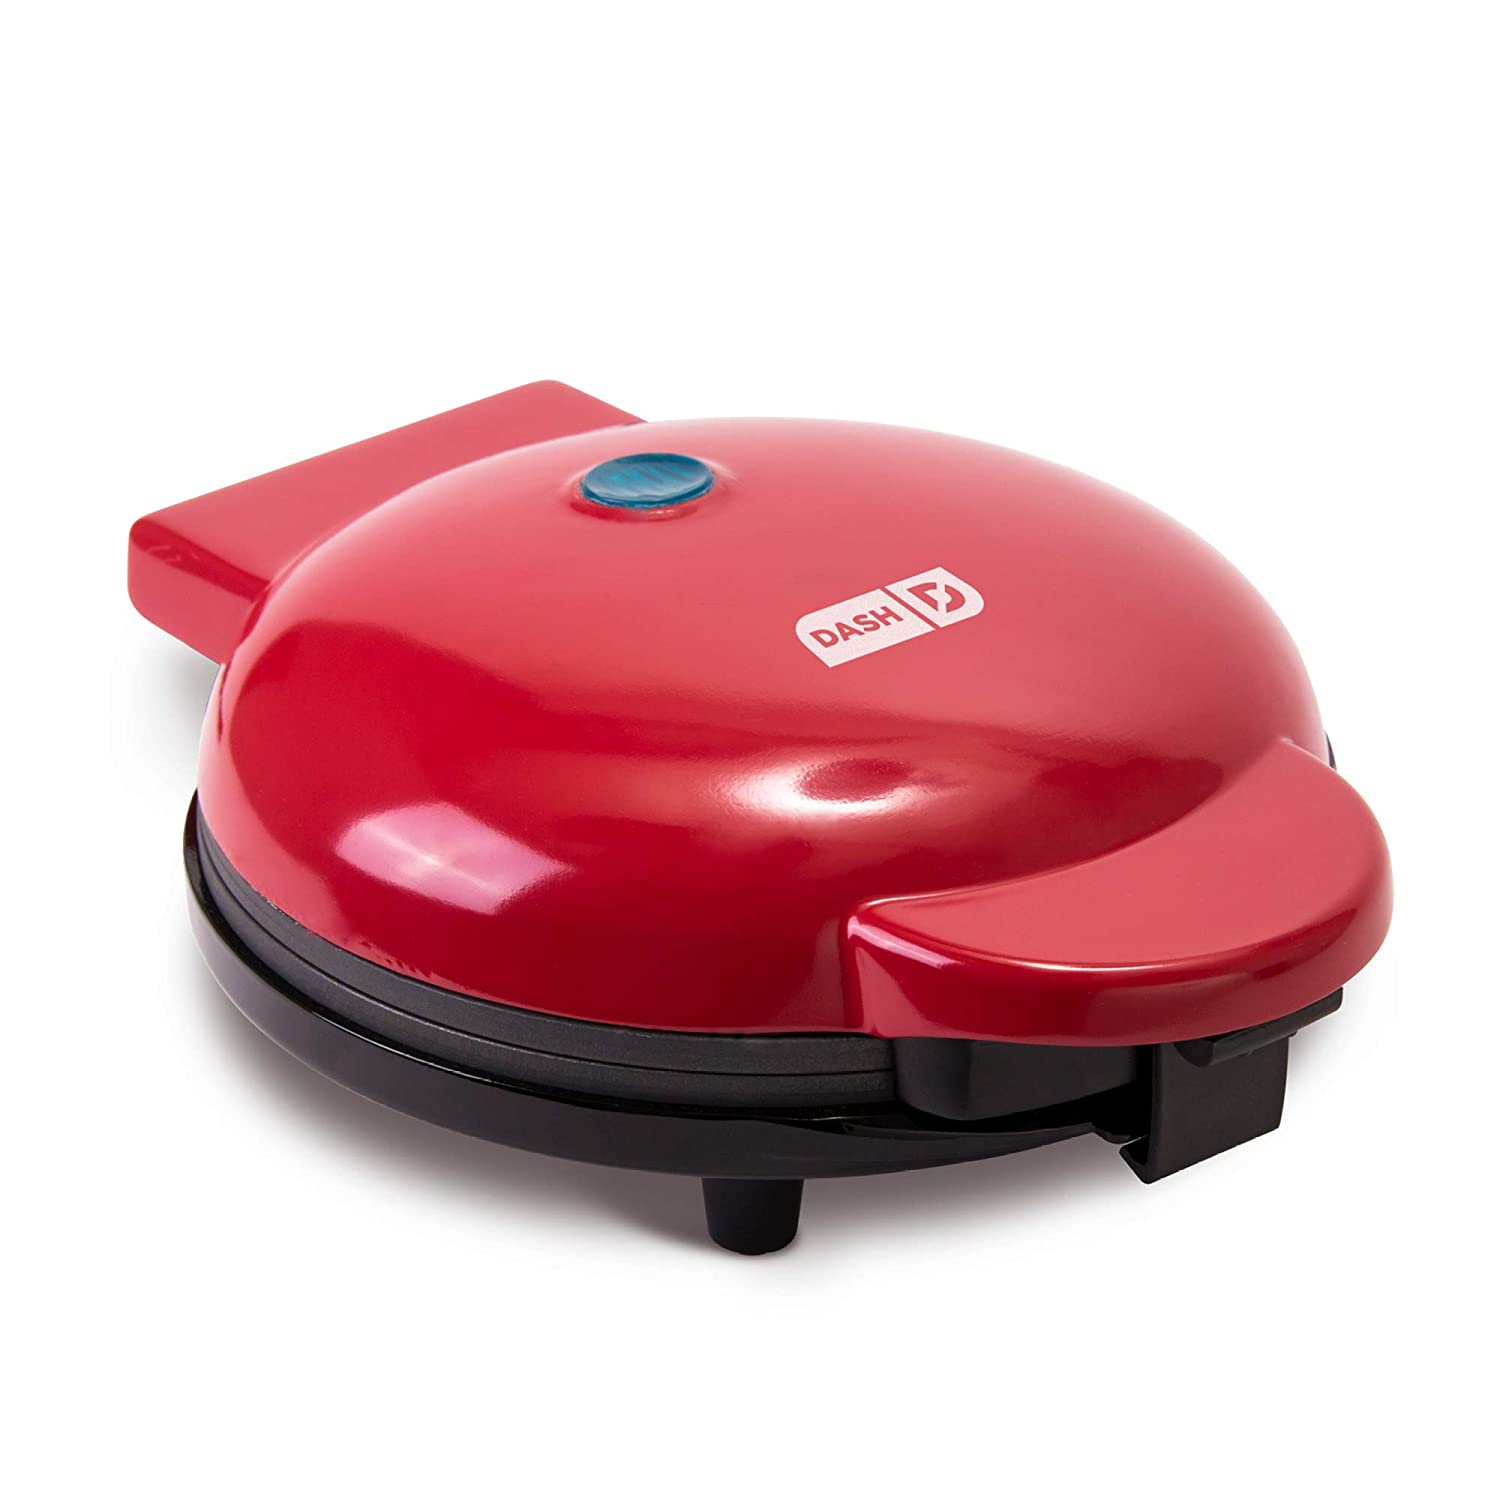 """Dash DEWM8100RD Express 8"""" Waffle Maker Machine for Individual Servings, Paninis, Hash browns + other on the go Breakfast, Lunch, or Snacks with Easy Clean, Non-Stick Sides Red"""